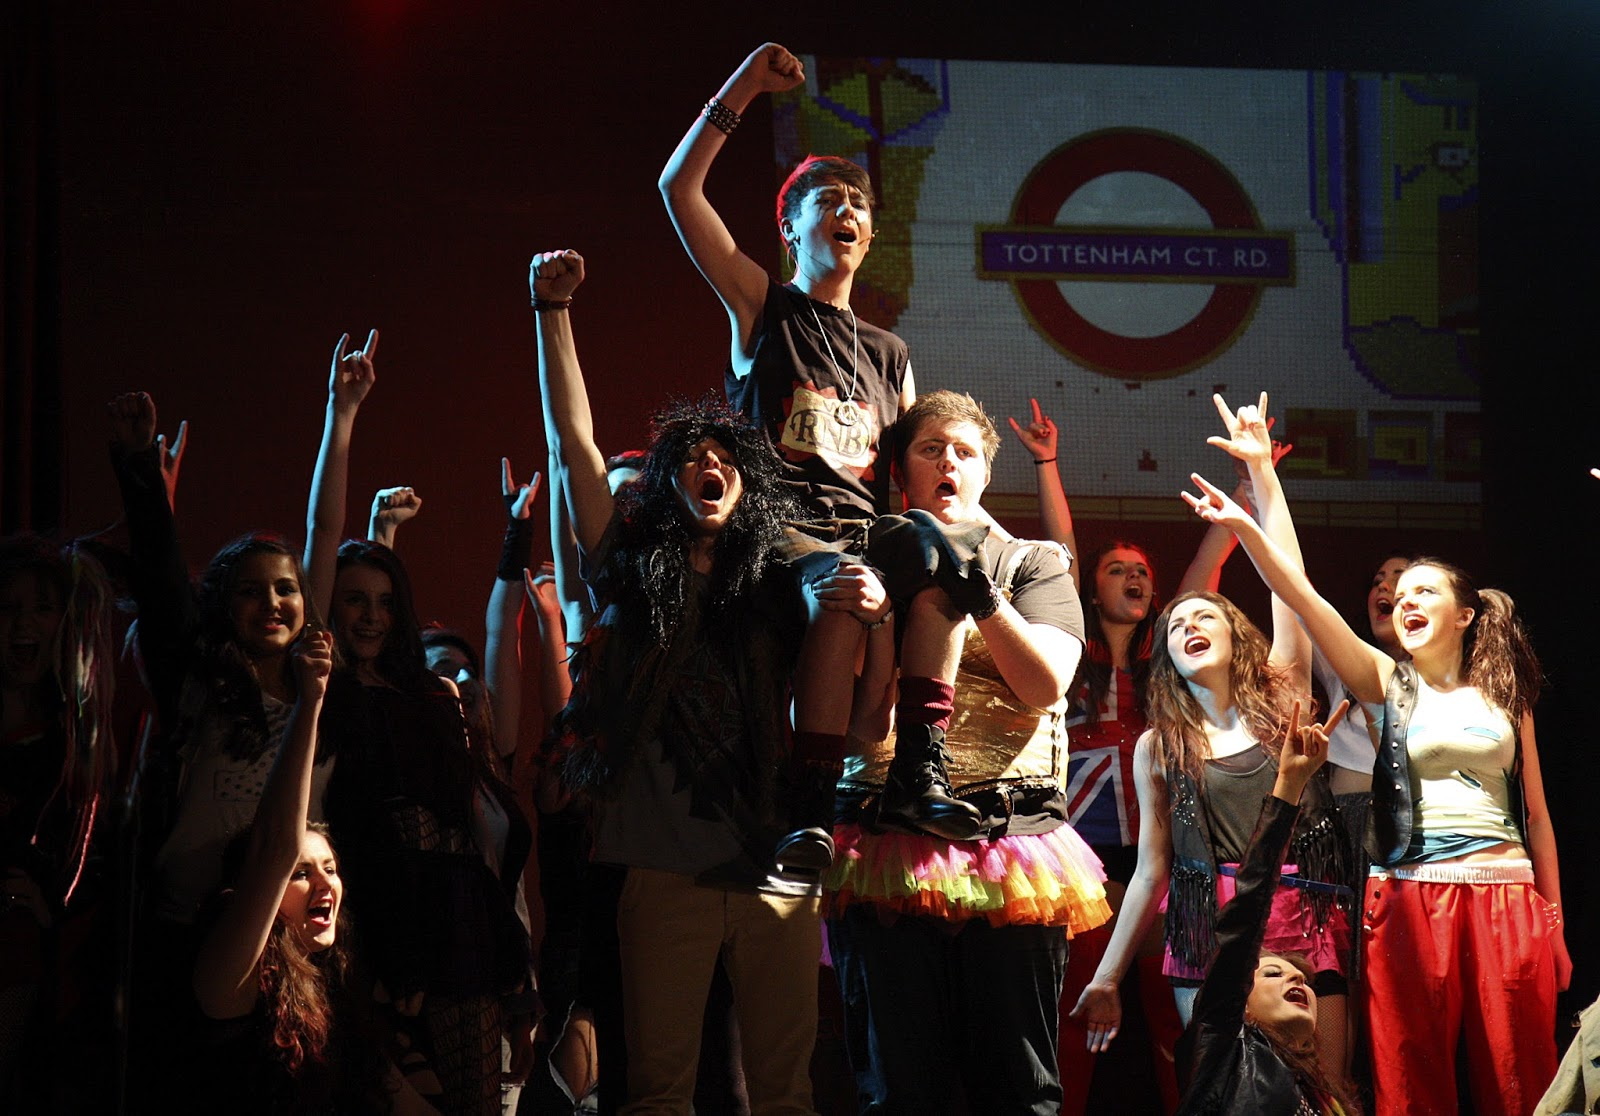 Wwry Costumes Part 4 Bohemians We Will on Bob The Builder Ideas On Pinterest